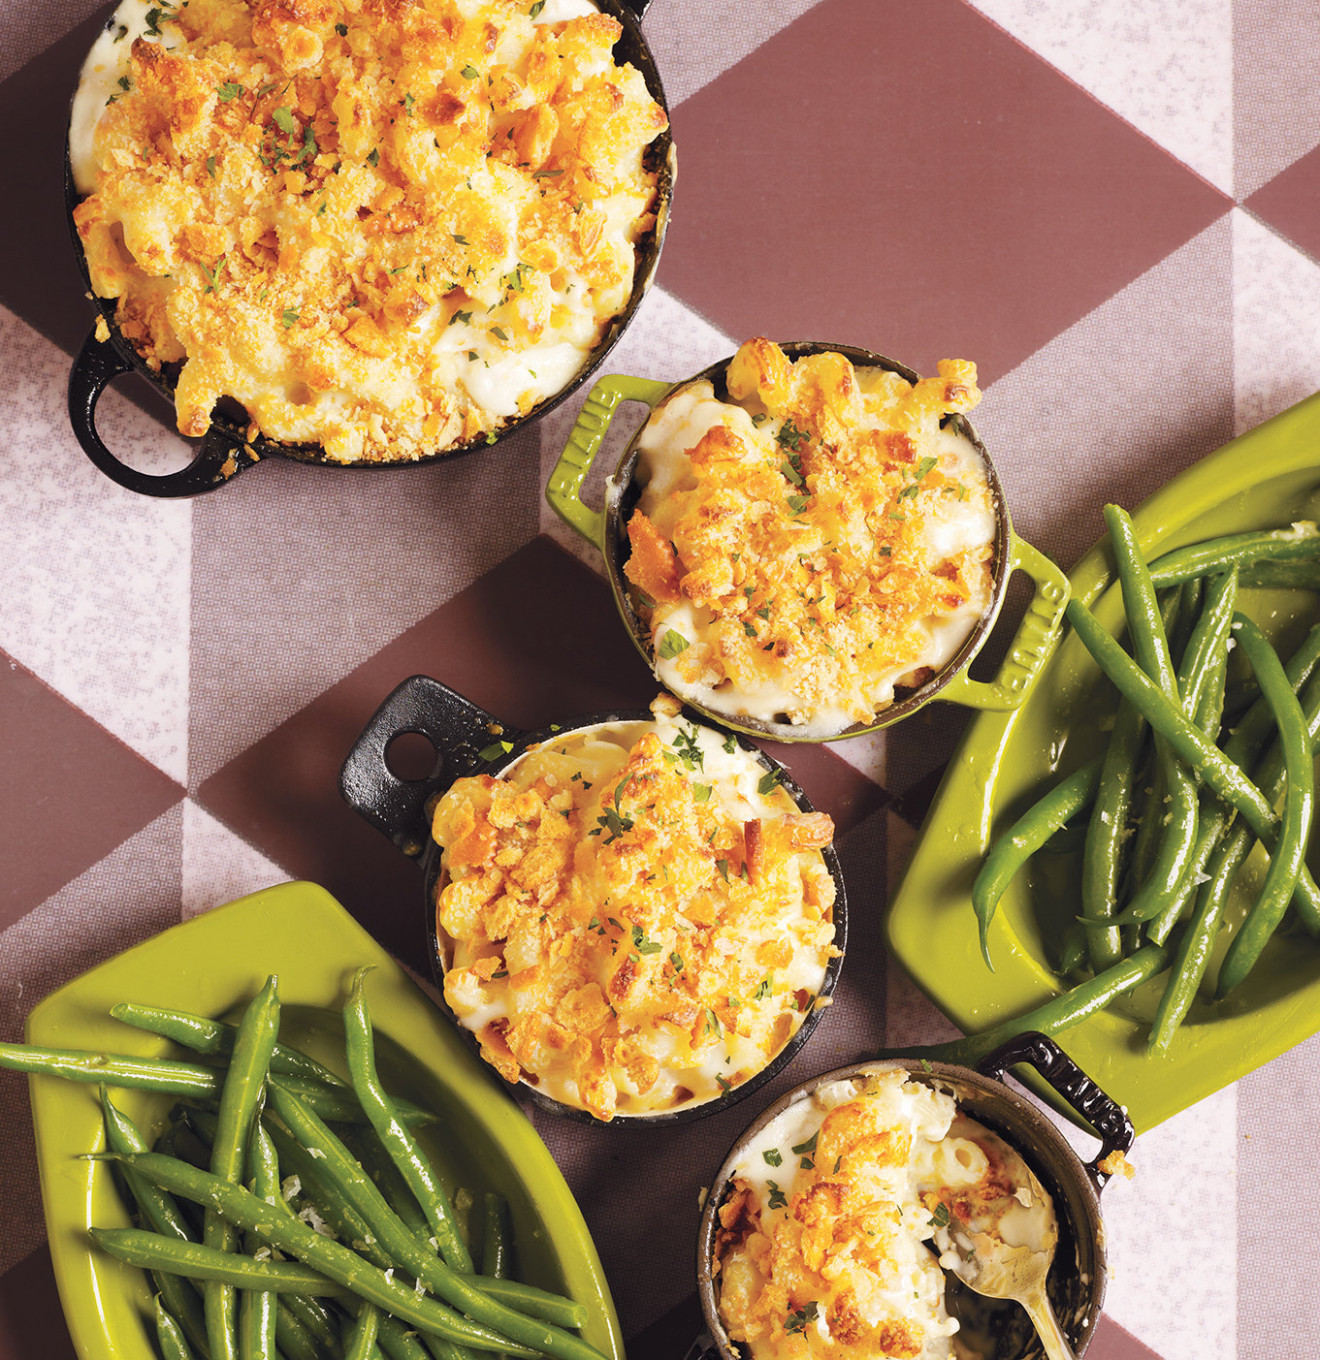 9 Make-Ahead Family Recipes - Real Simple